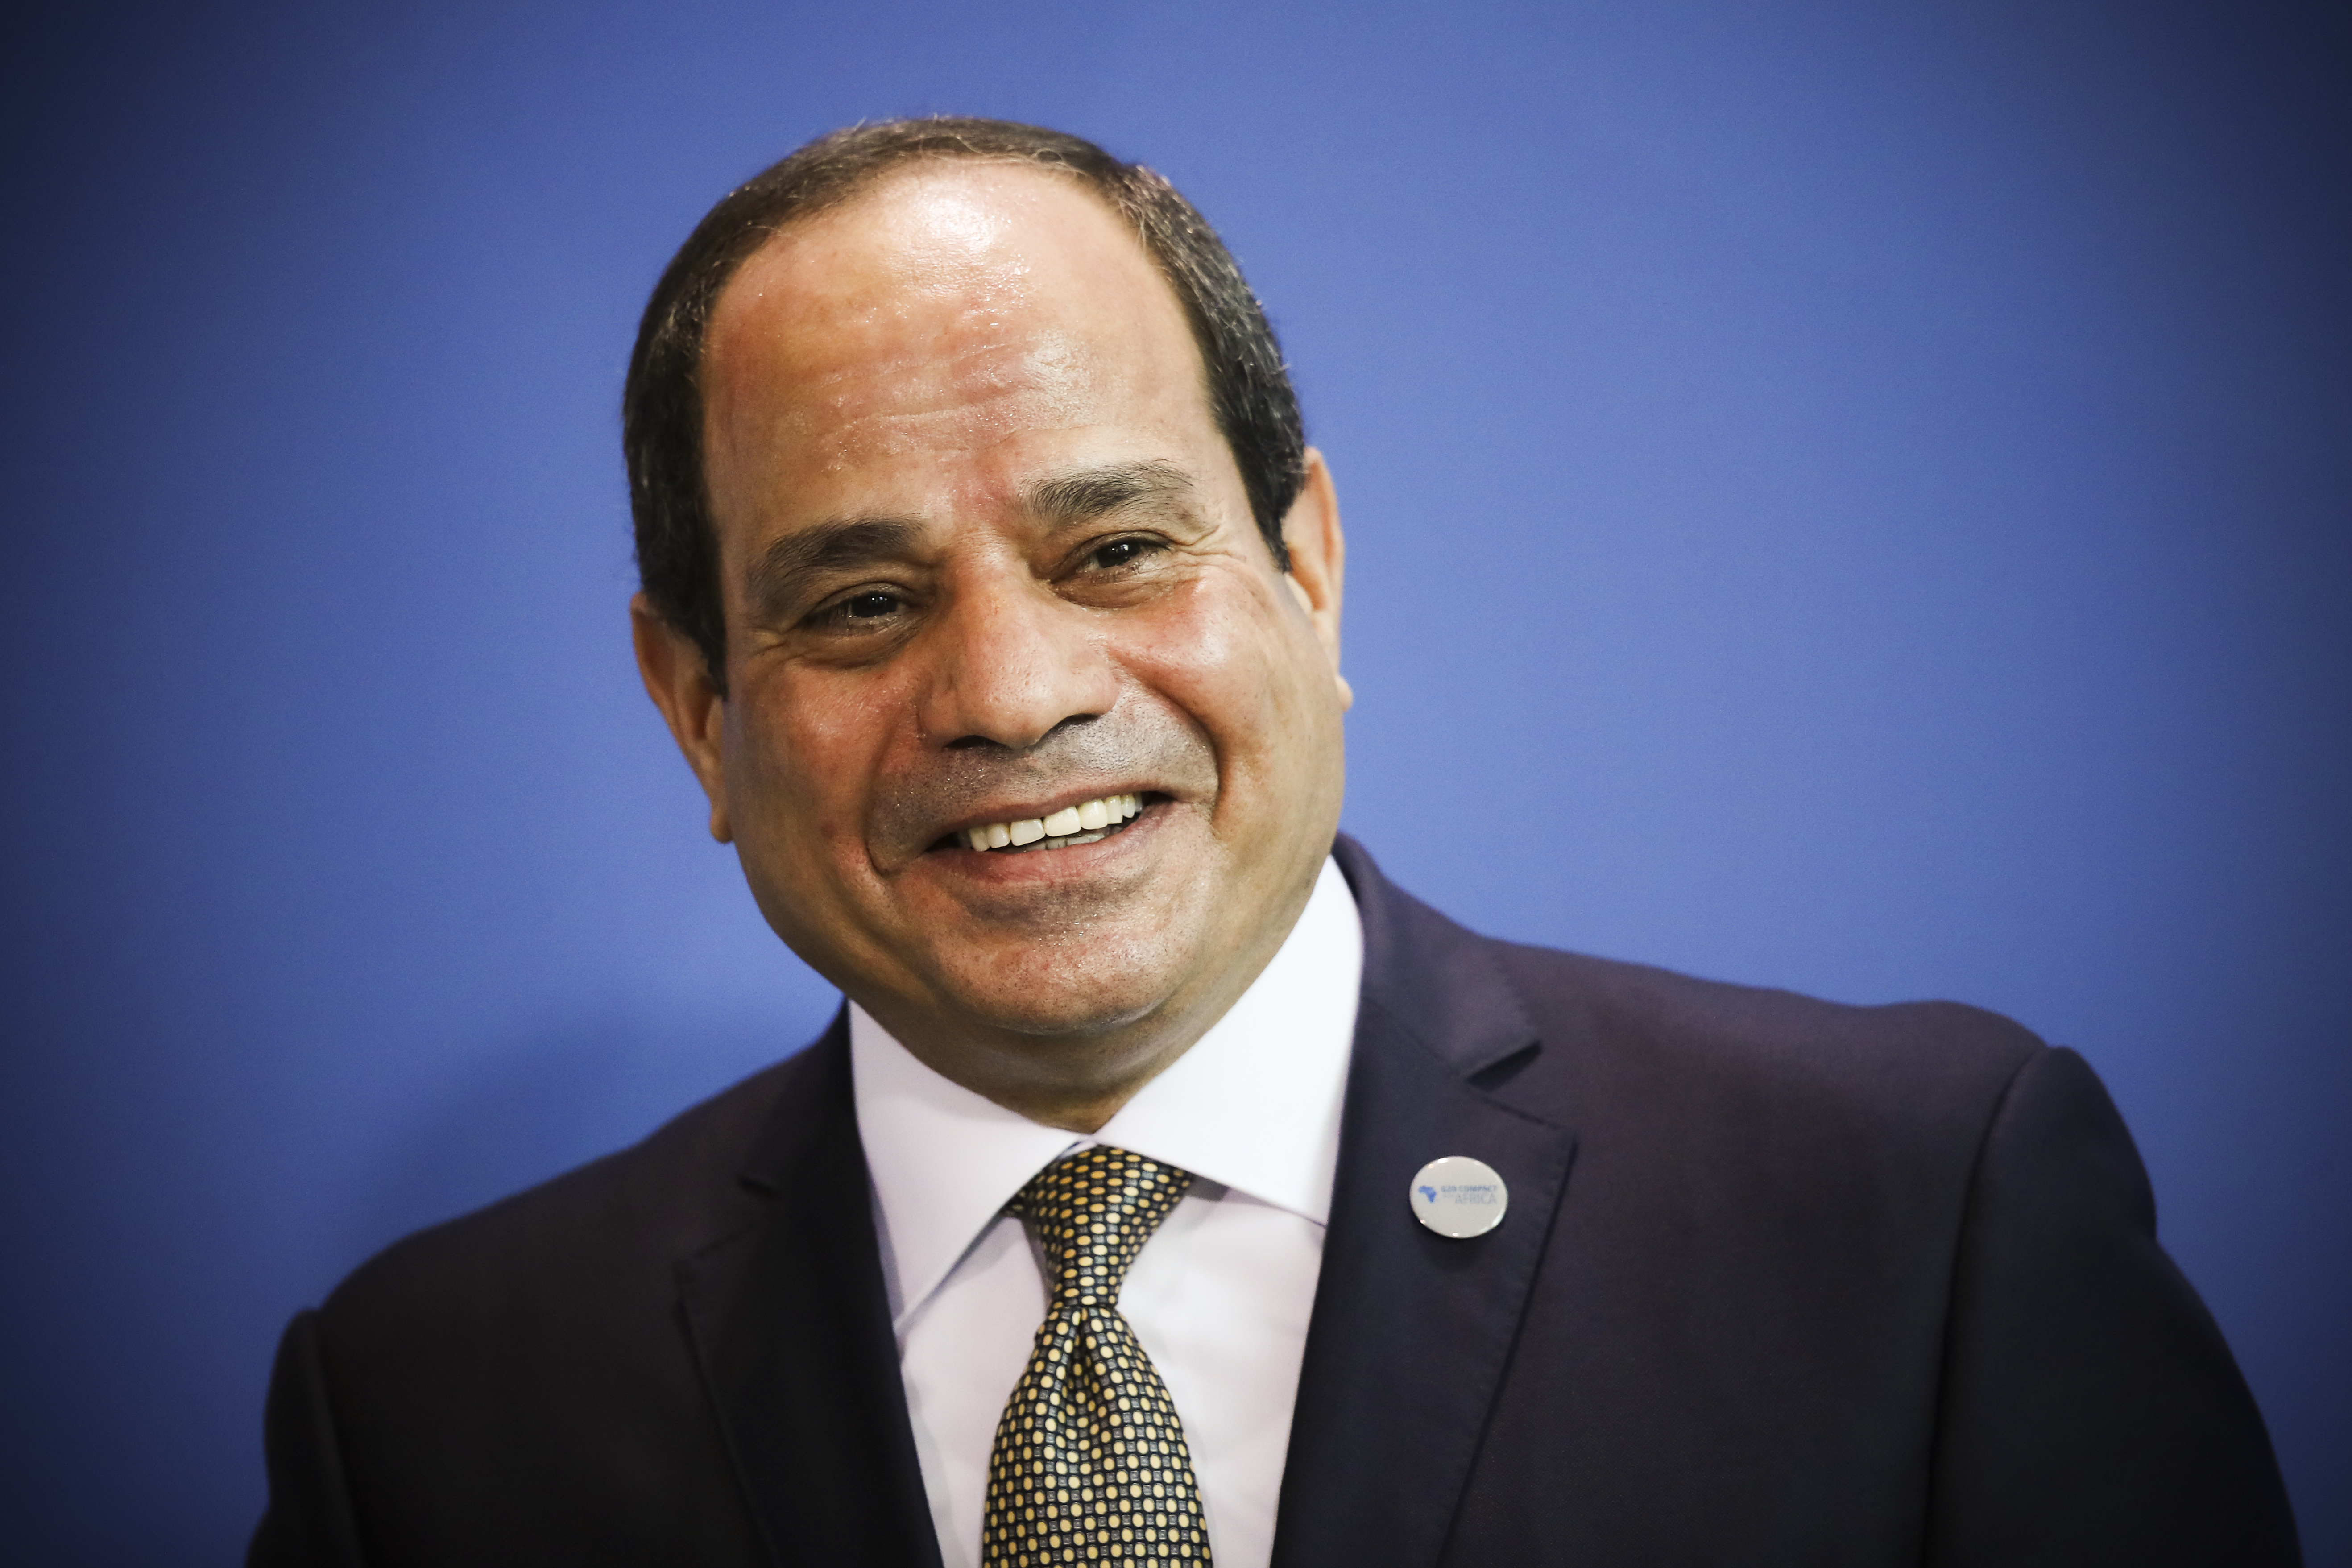 Egypt's president tried to stop his 60 Minutes interview from airing. It's now clear why.